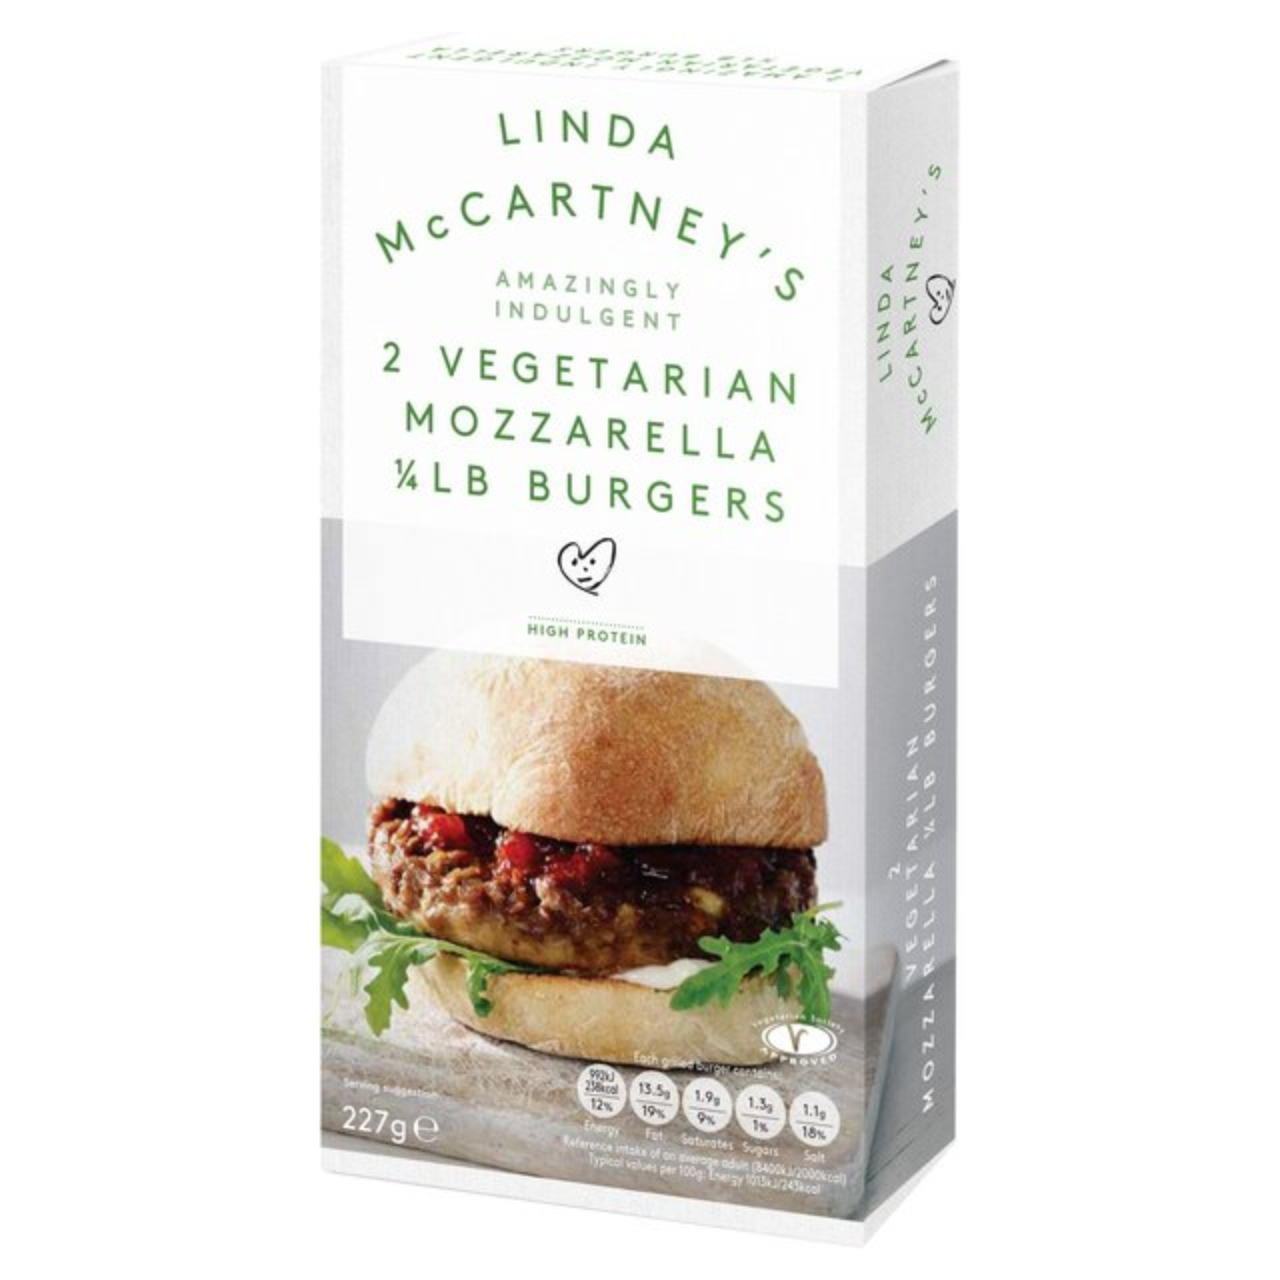 Linda McCartney's Mozzarella Burgers 1x2